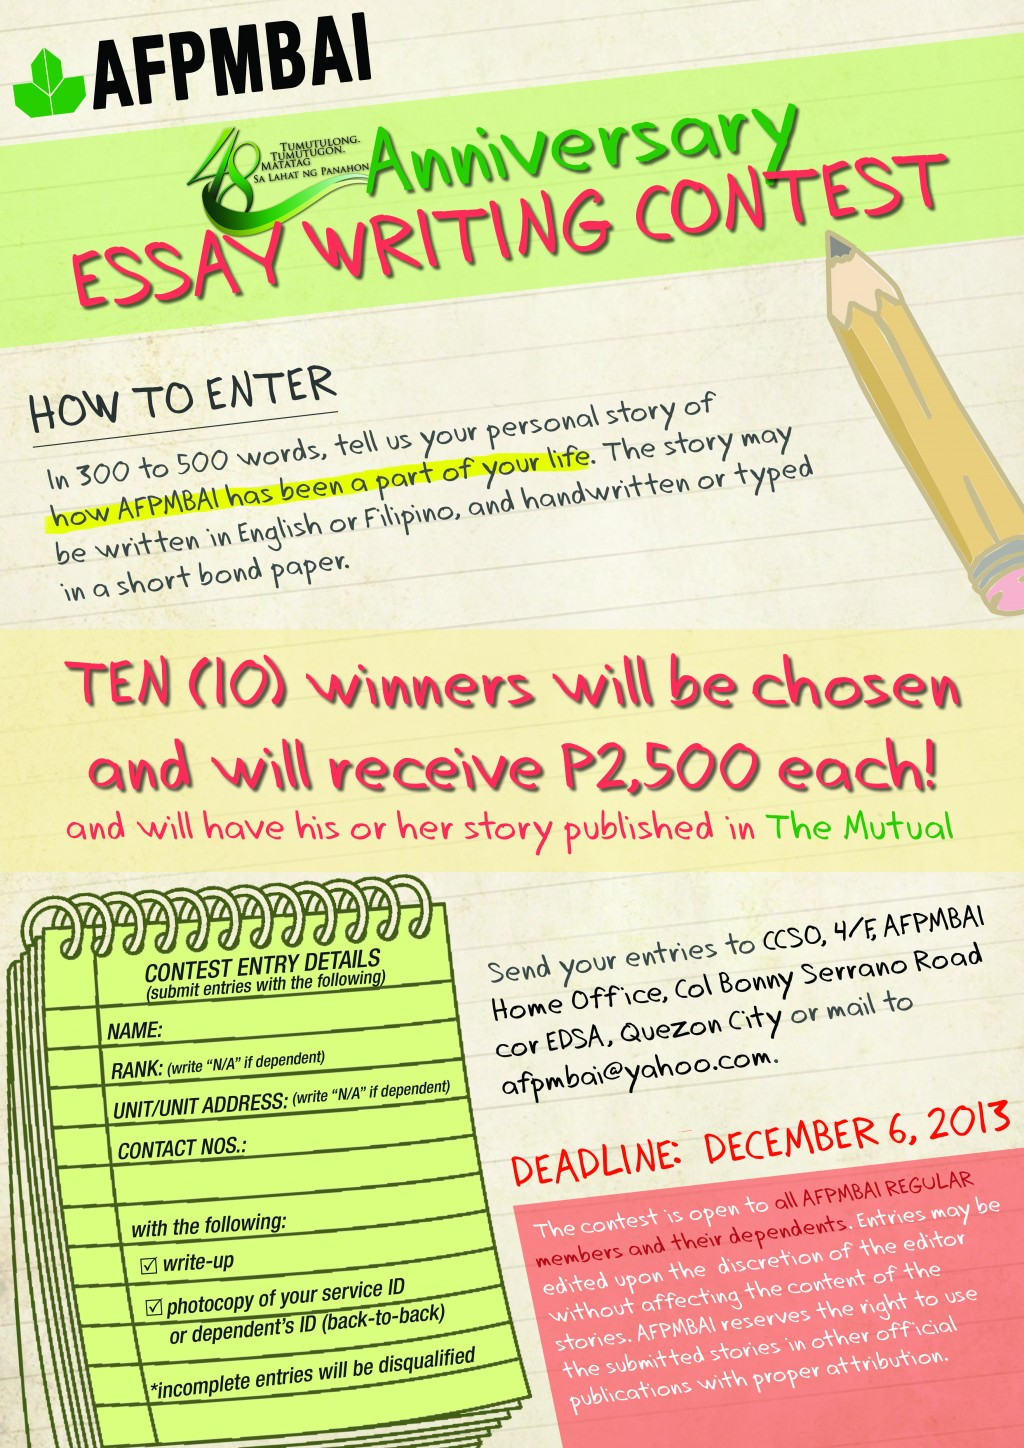 003 Essay Example Writing Contest Competition Essays About For Nutrition Month P Objectives Rubrics Philippines Mechanics Criteria Tips Incredible International Competitions High School Students Rules By Essayhub Large